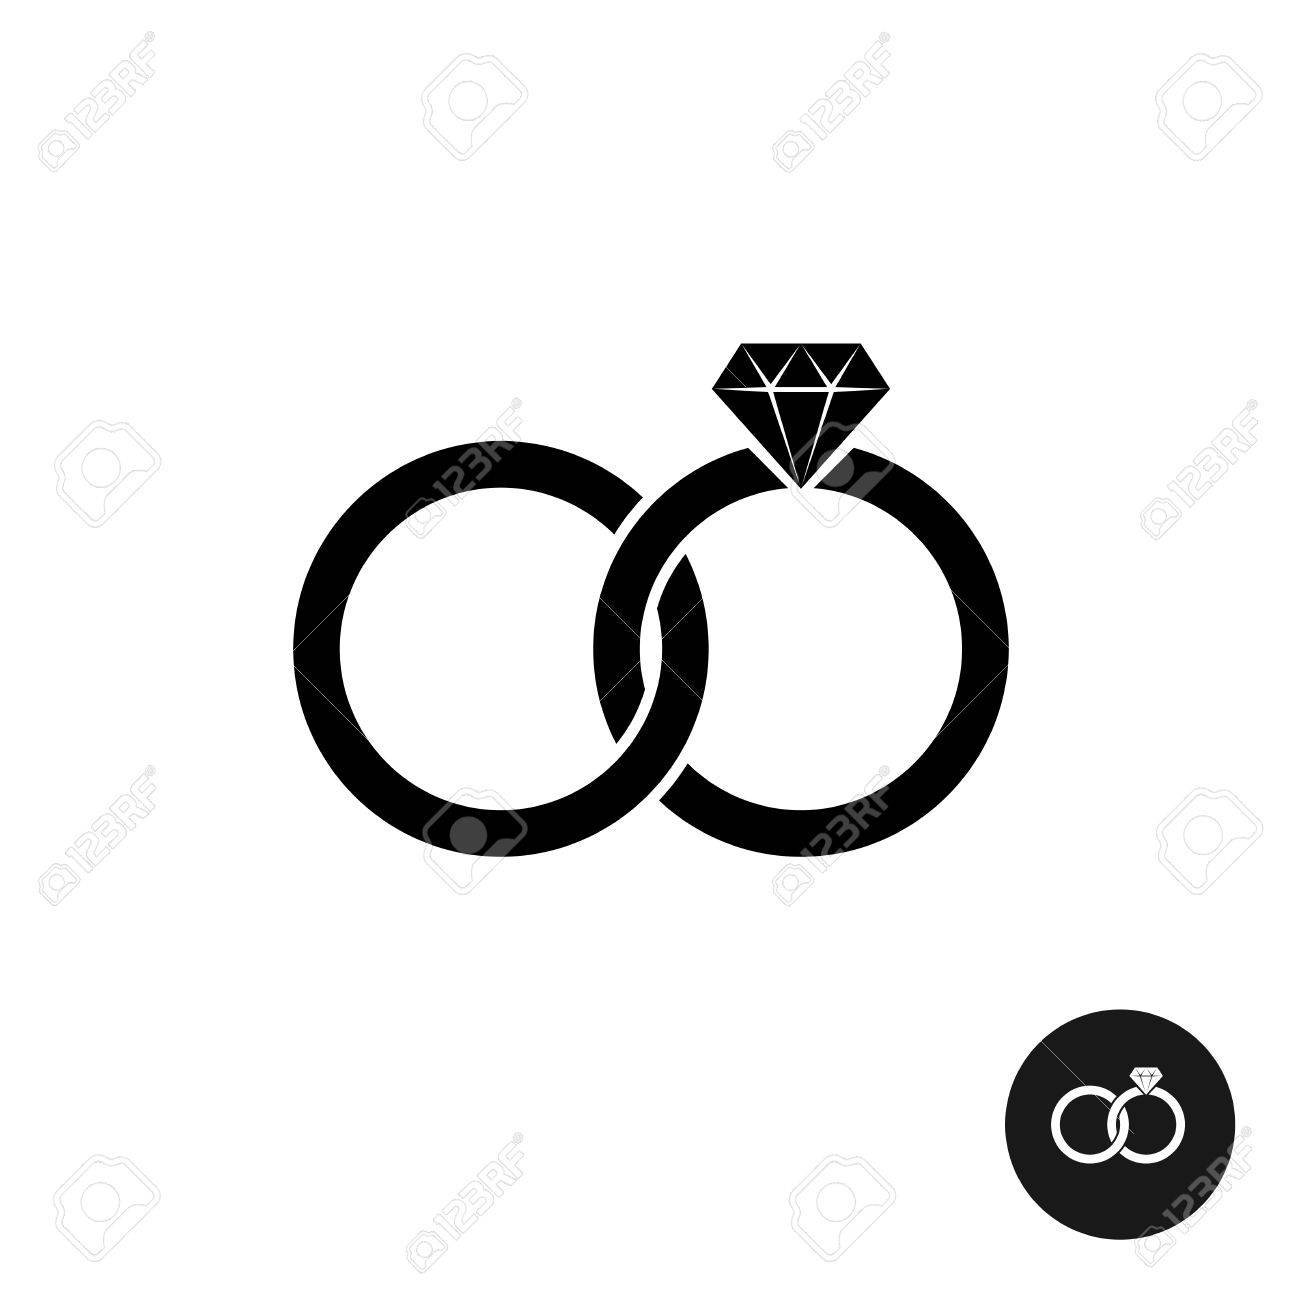 Wedding ring icon clipart image freeuse Wedding rings simple black icon. Two crossed rings with ... image freeuse